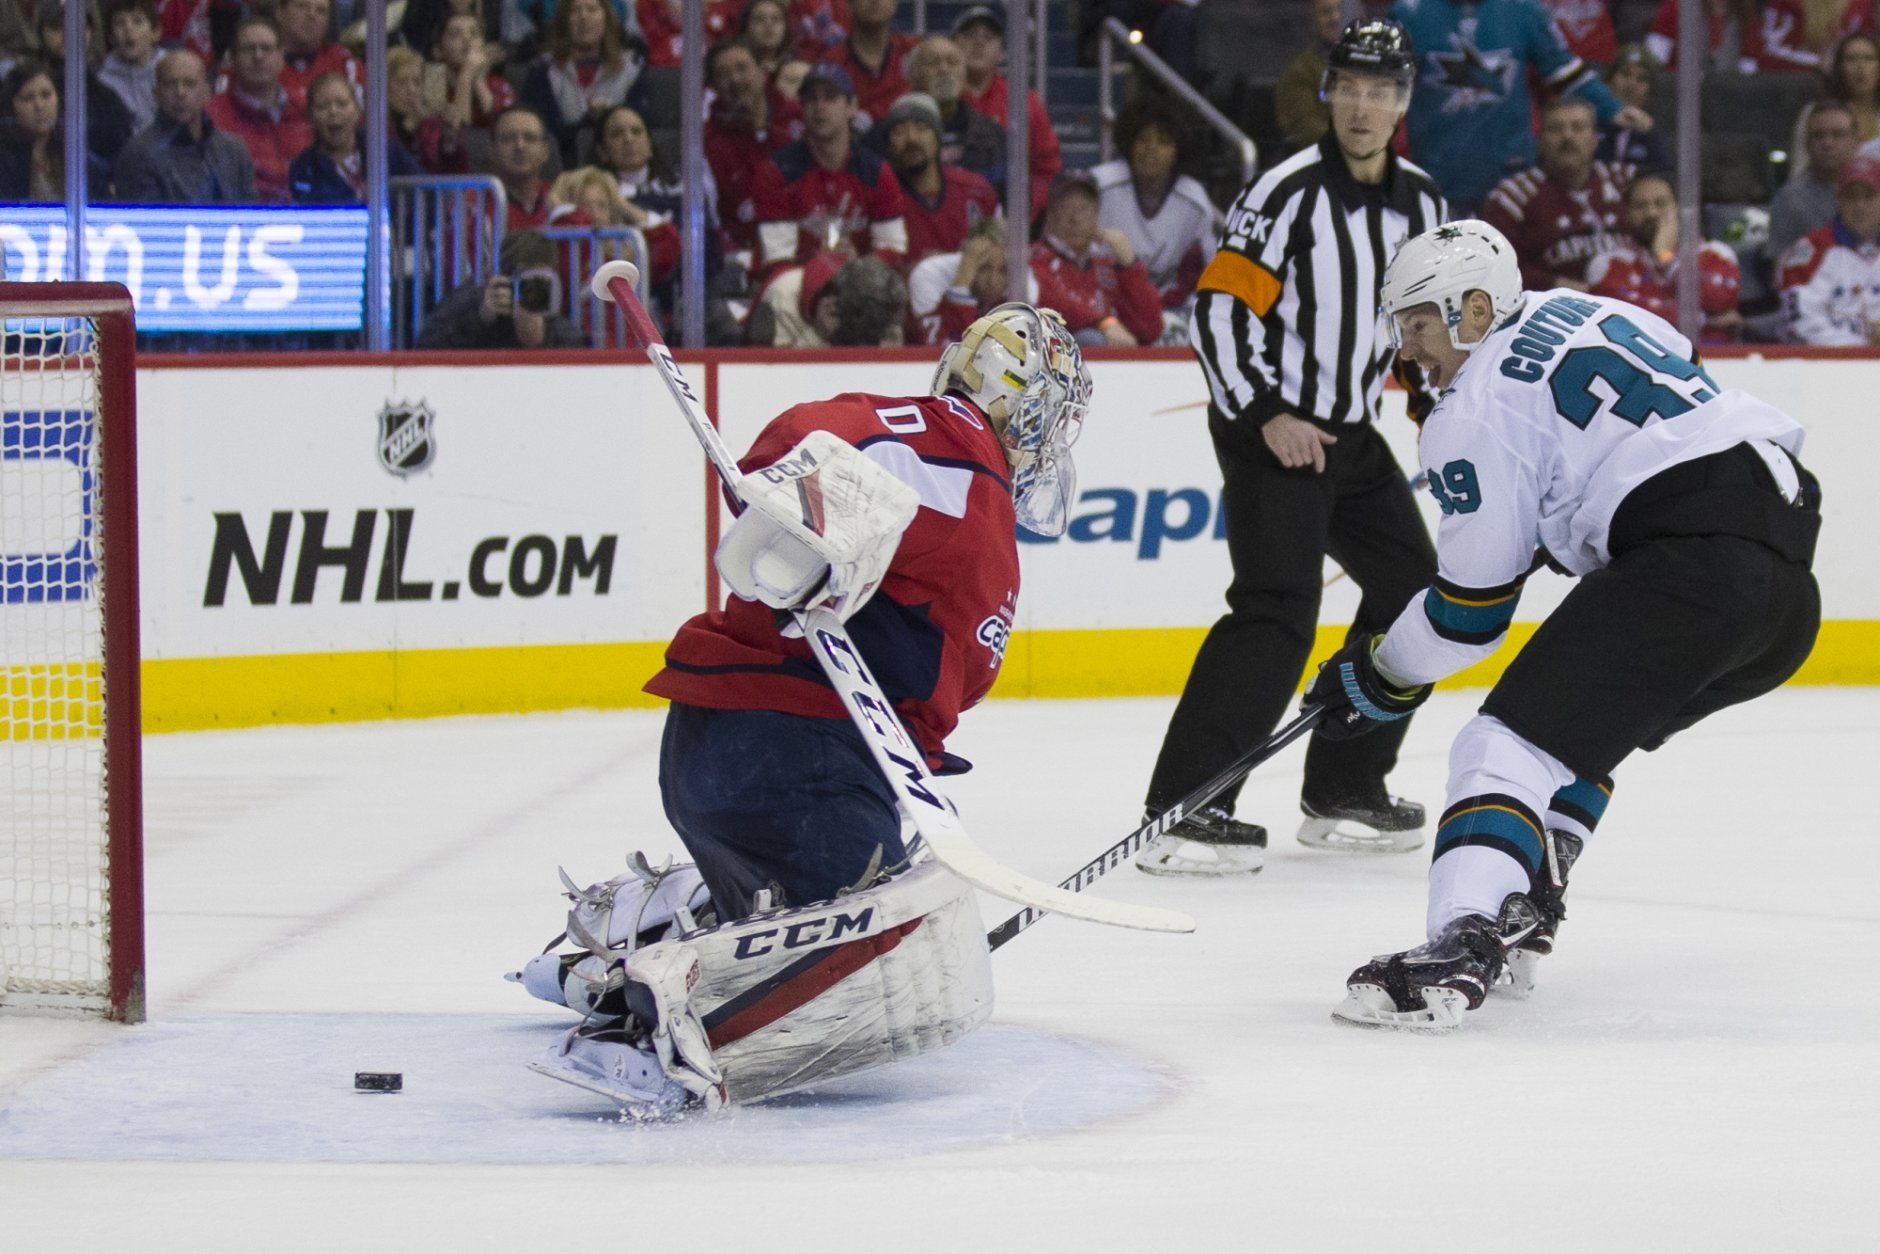 Logan Couture, Braden Holtby